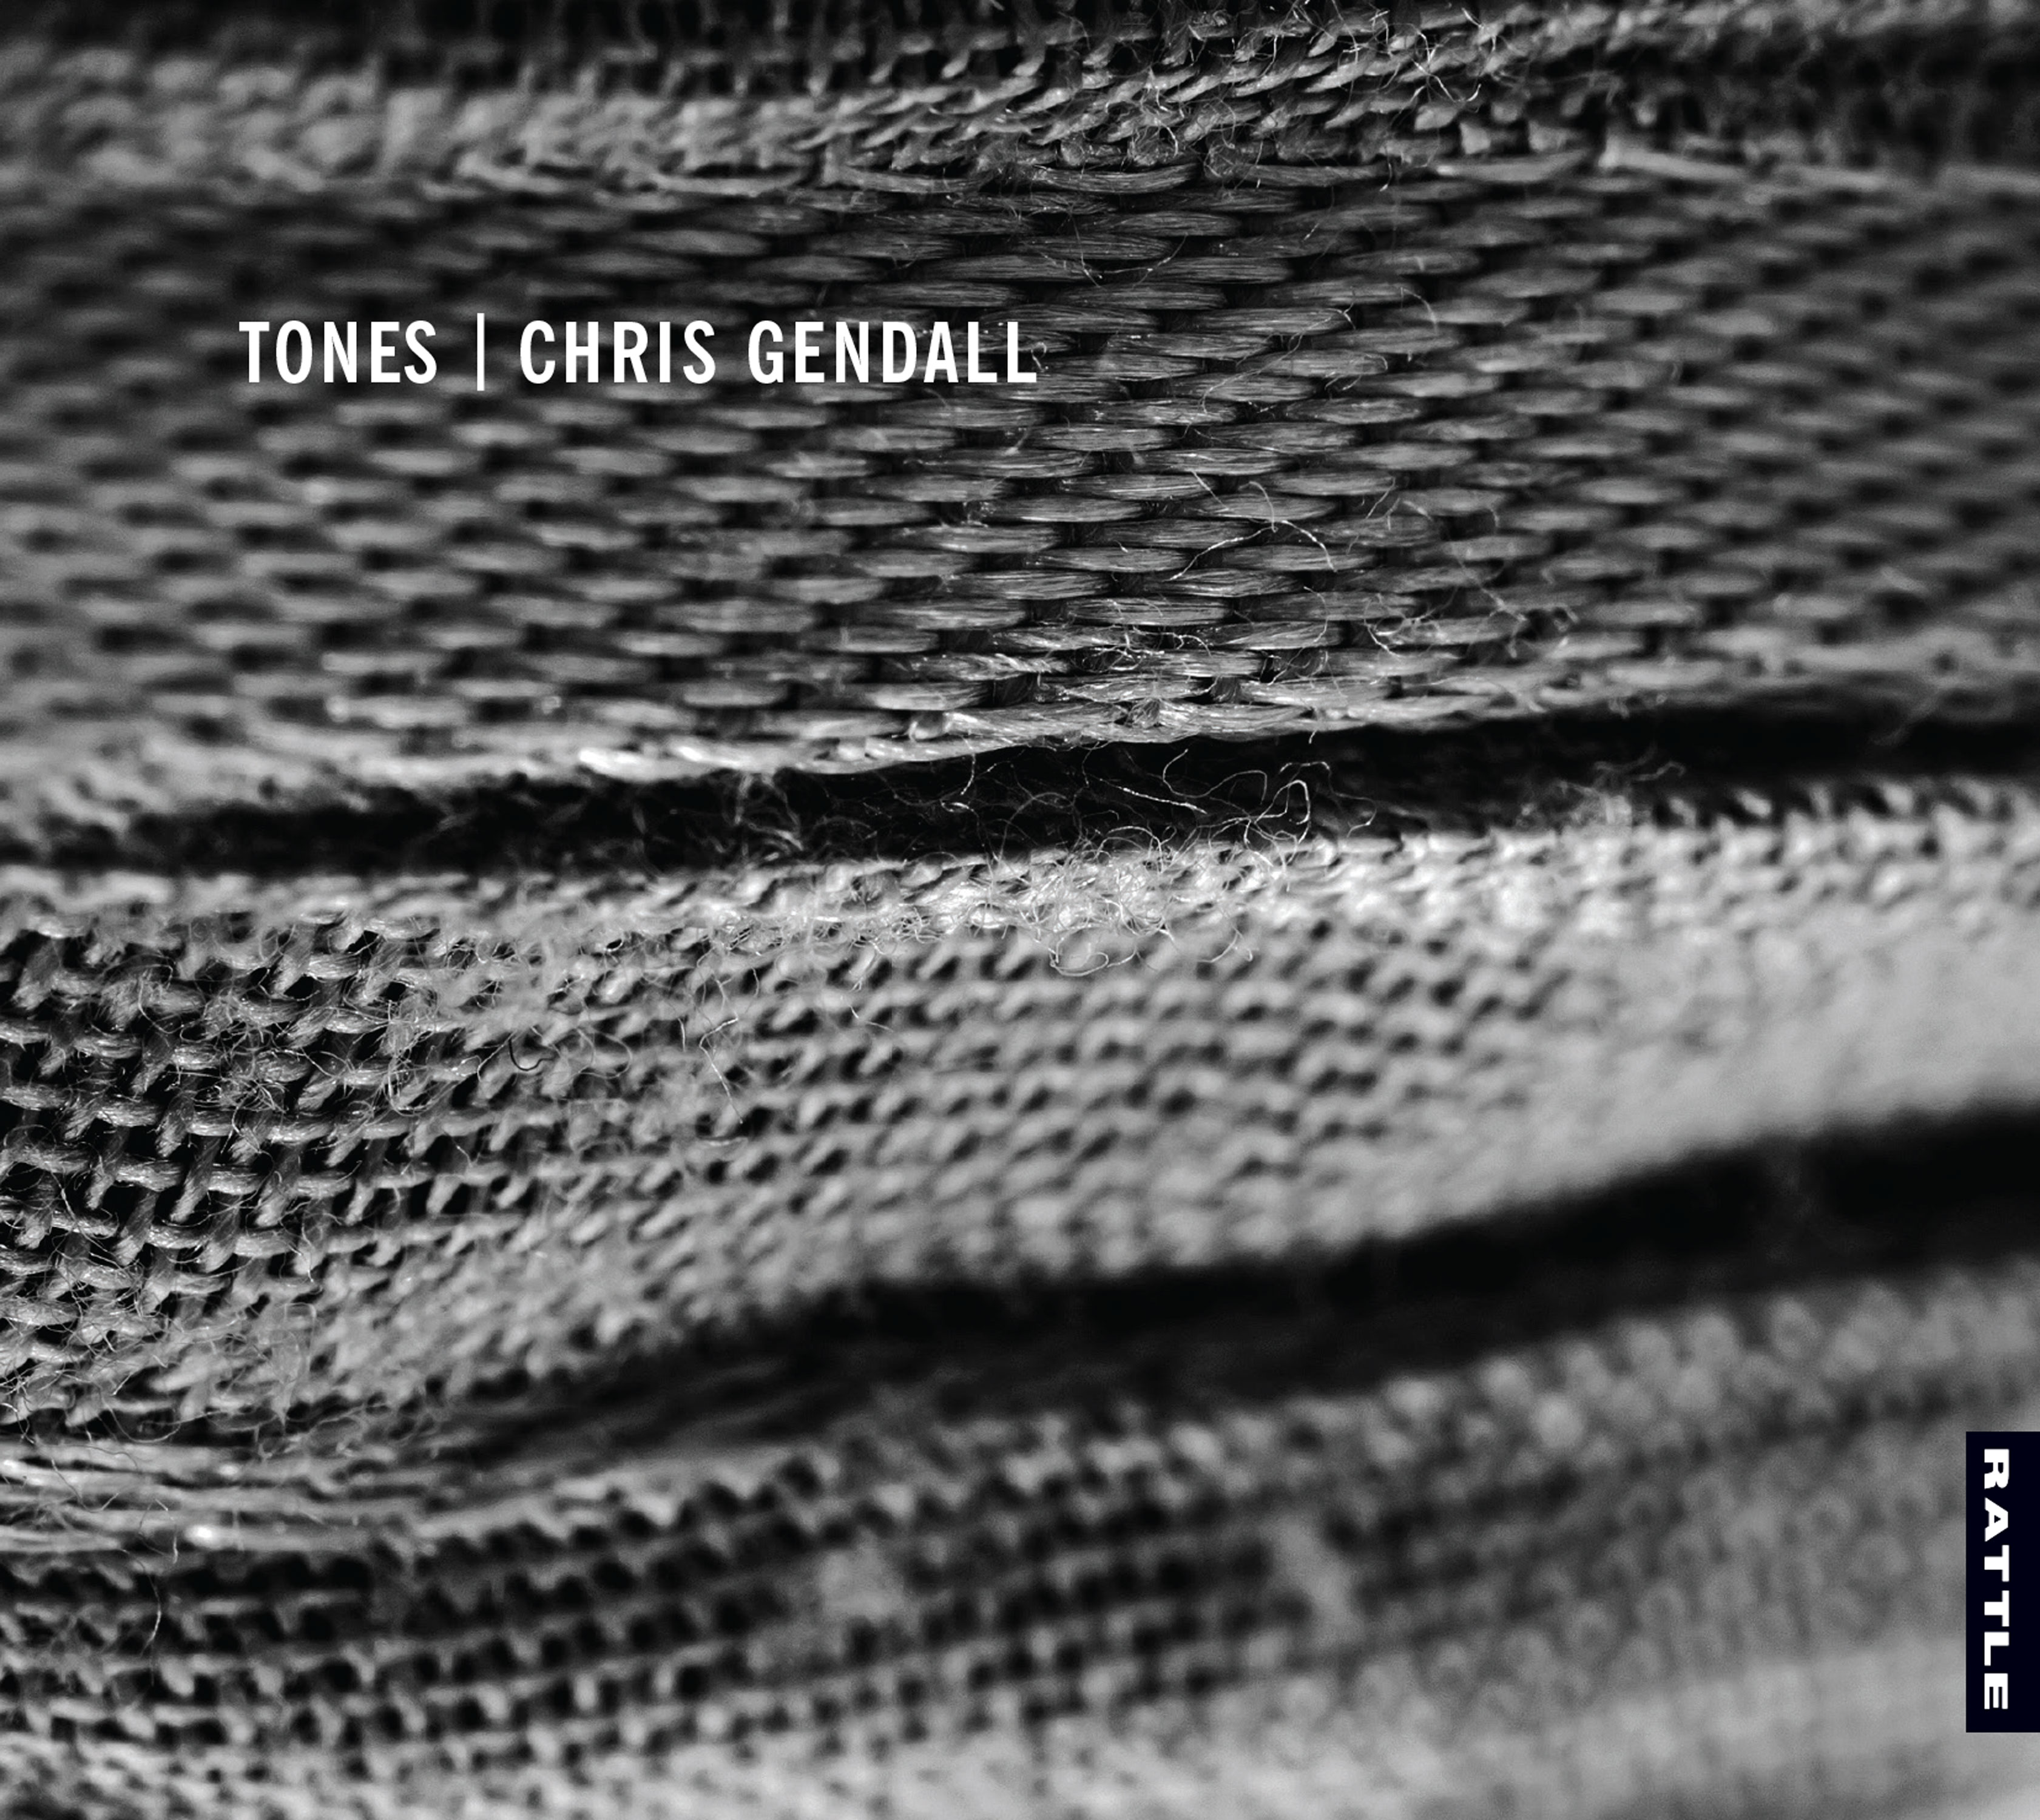 Chris Gendall | Tones - downloadable MP3 ALBUM